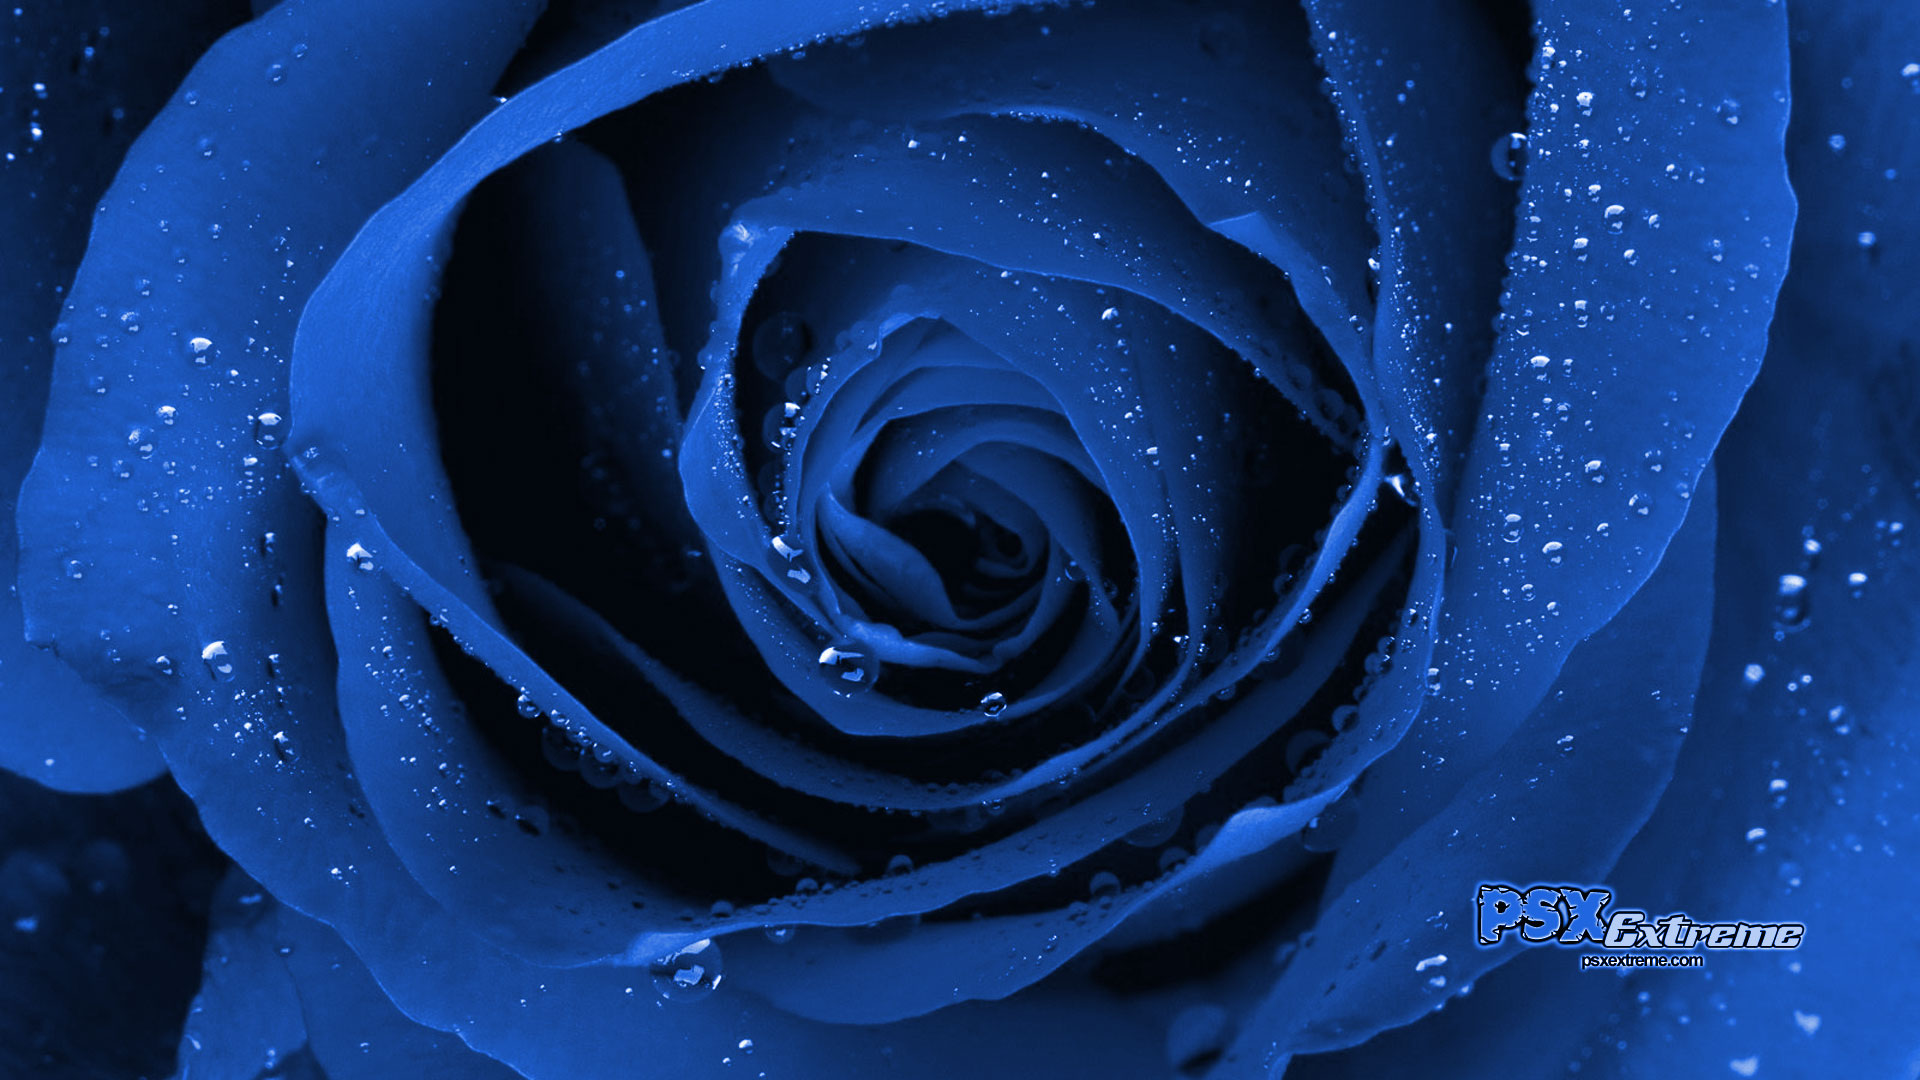 Blue Rose Wallpapers 1920x1080